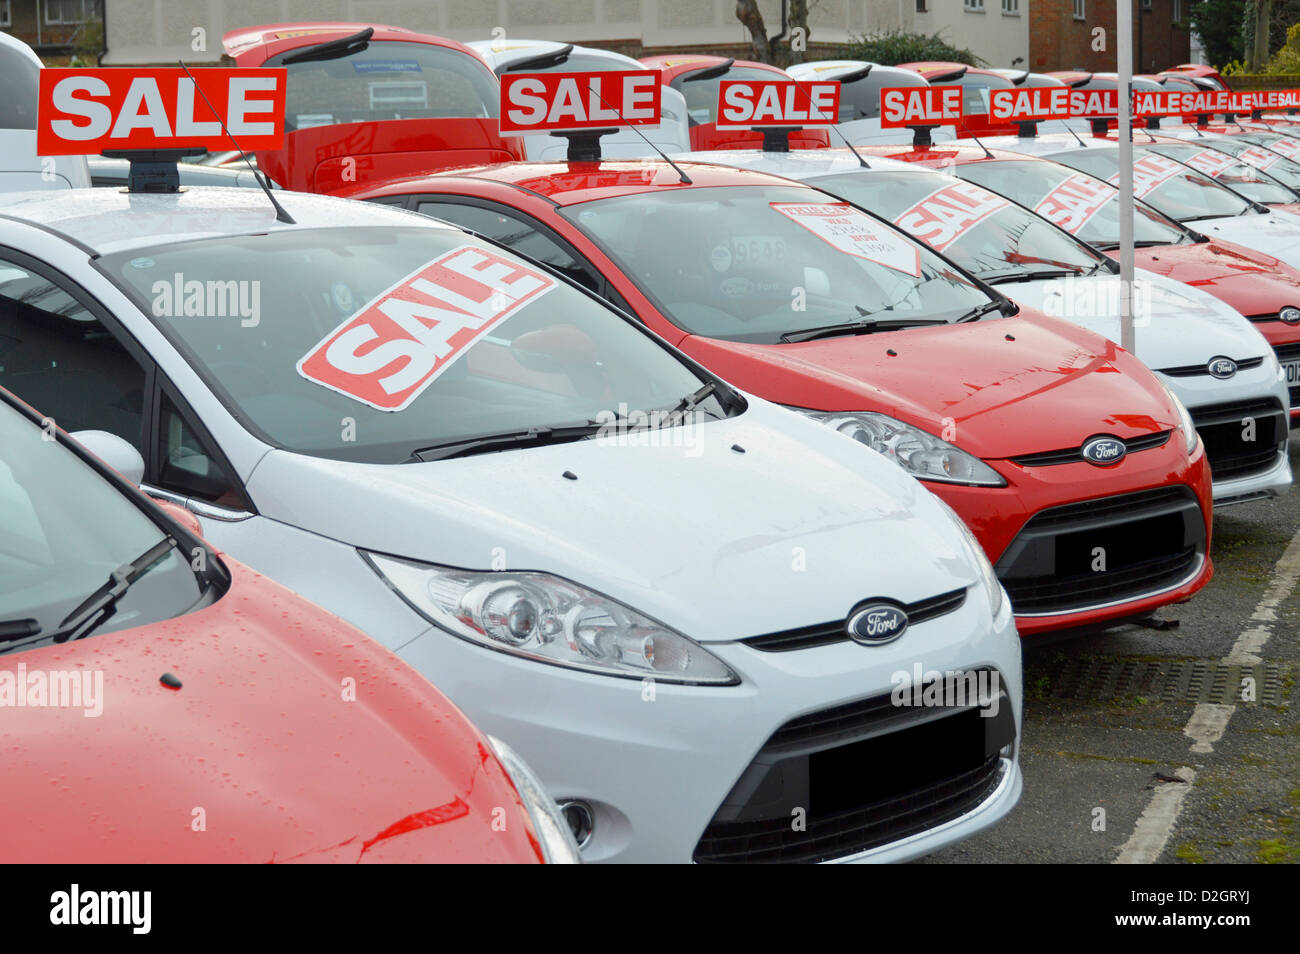 Sale of used Ford cars on car dealership forecourt outside showroom arranged alternate red and white obscured numberplates - Stock Image